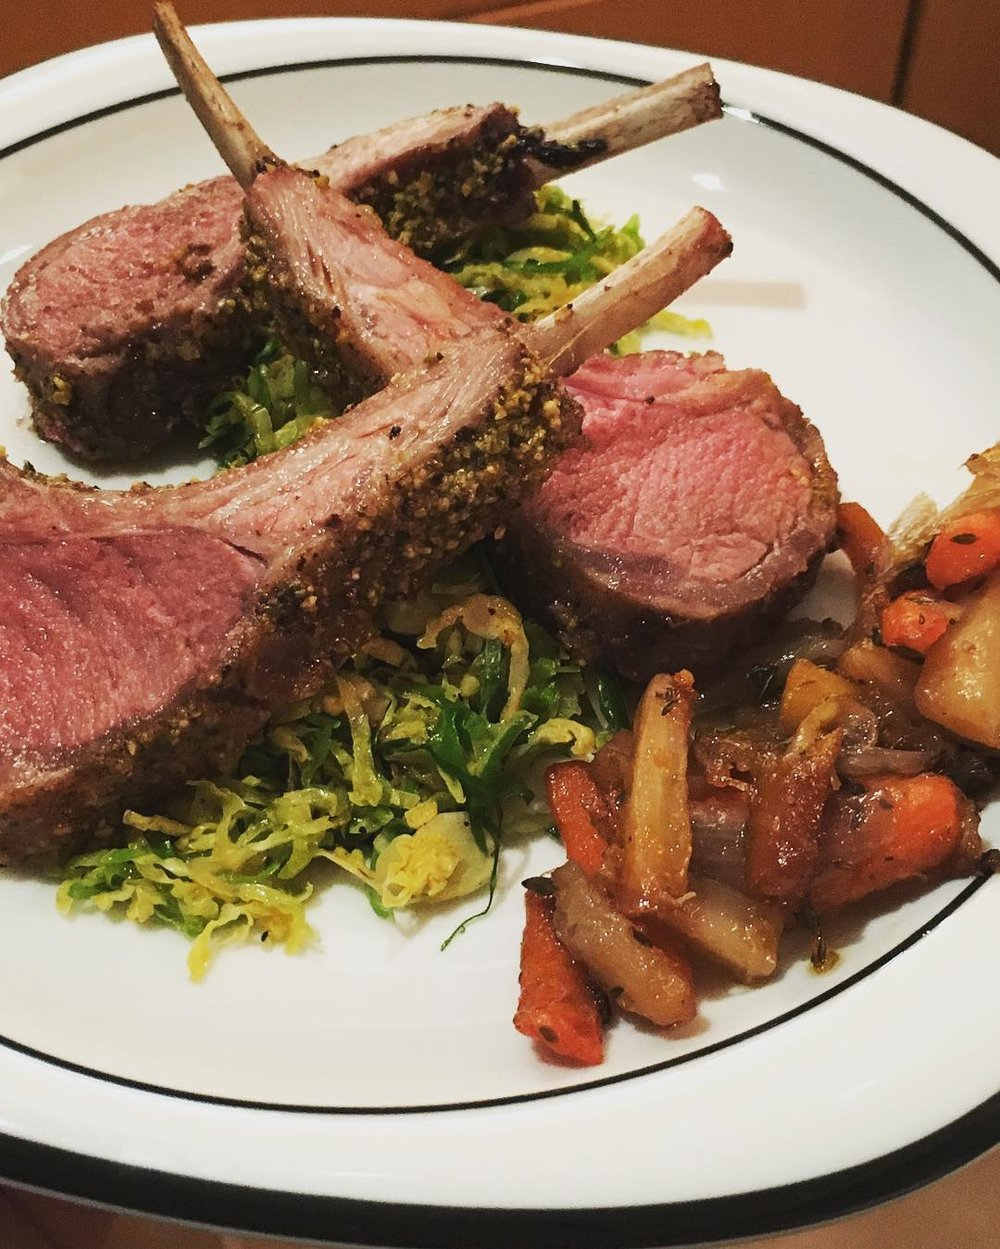 Pistachio Encrusted Lamb over Brussels Sprouts with Caramelized Carrots